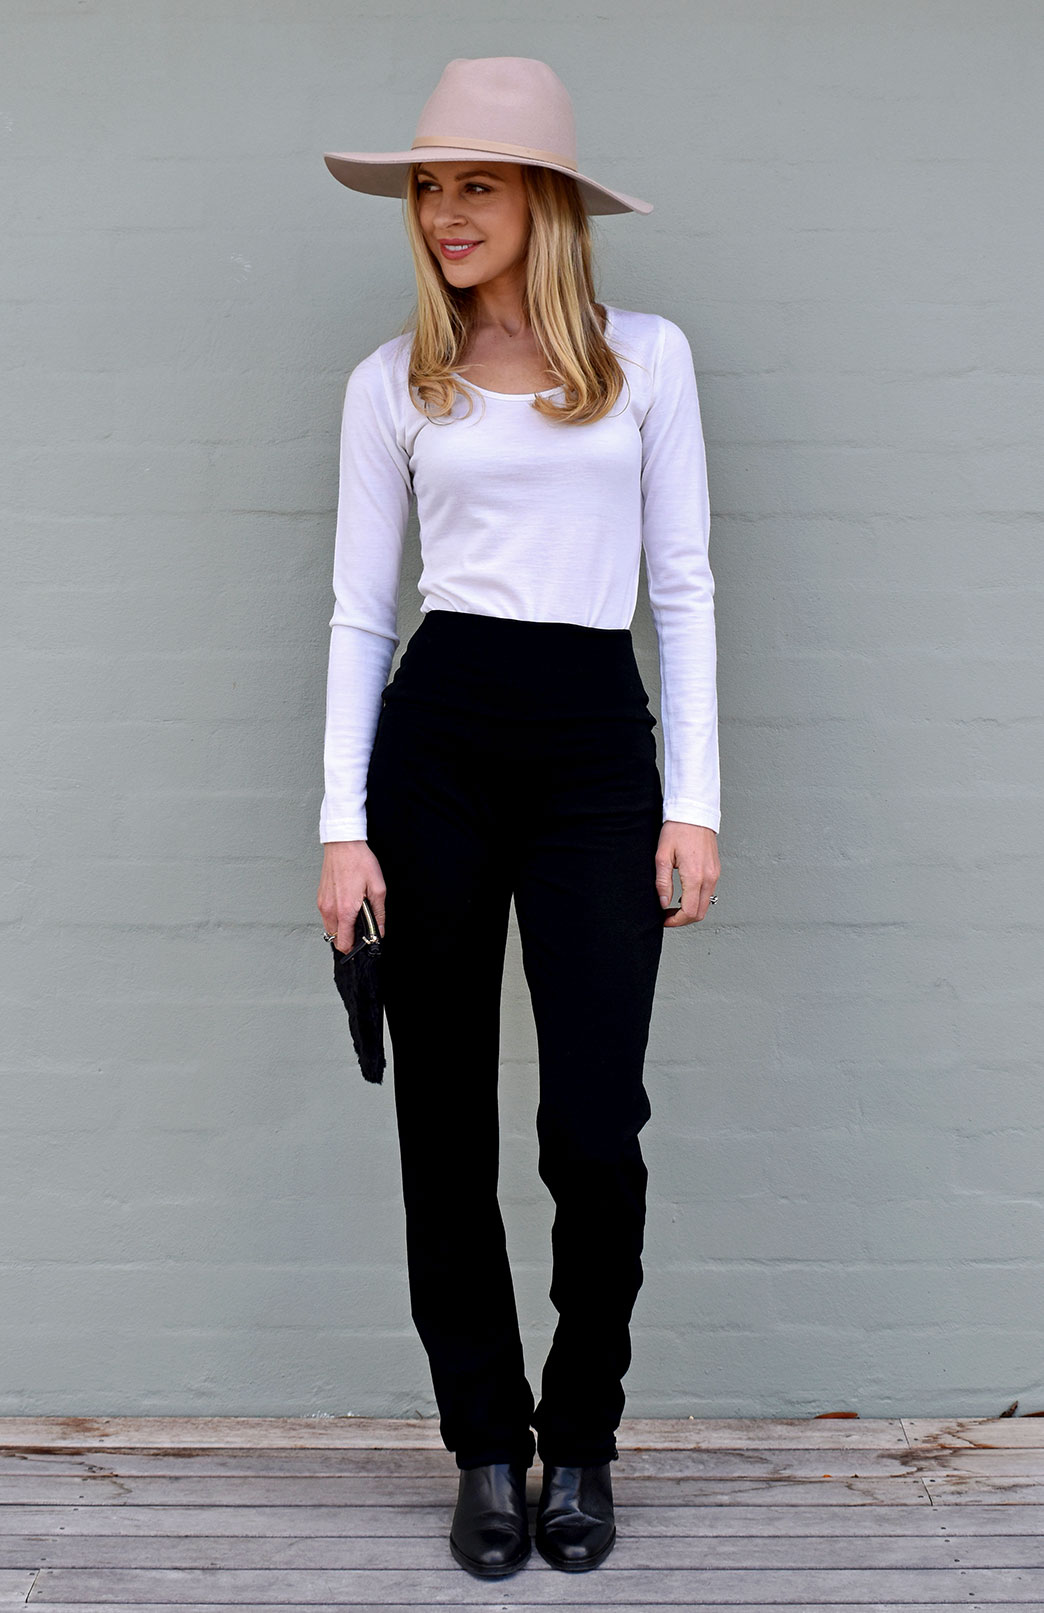 Straight Leg Pants - Midweight - Women's Black Midweight Wool Straight Leg Pants with wide waistband - Smitten Merino Tasmania Australia